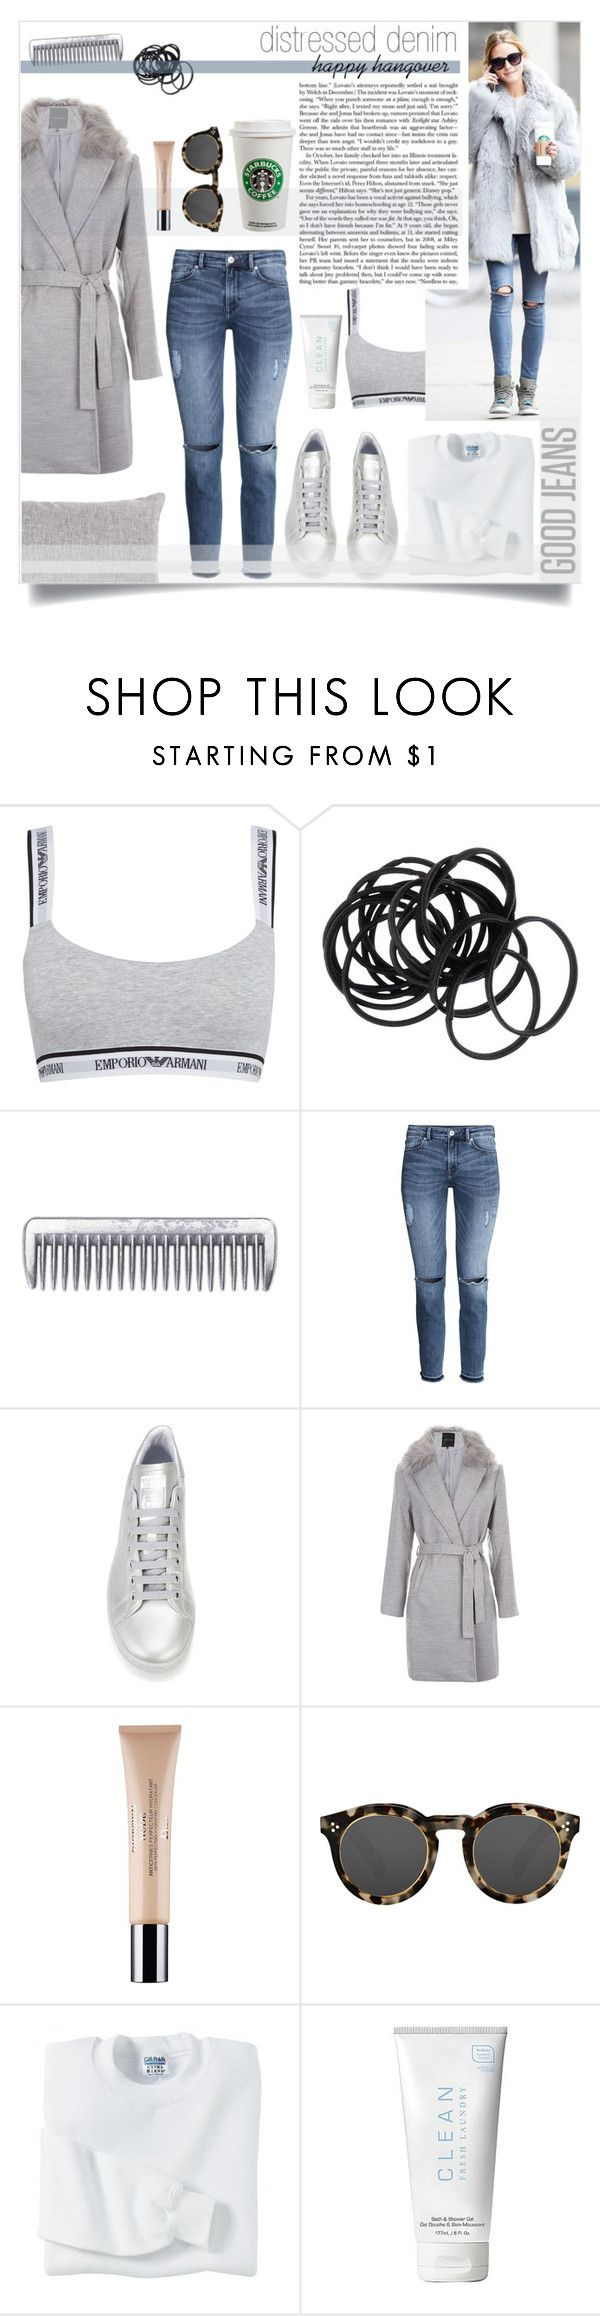 """""""Dissertier Denim makes a happy hangover style - Olivia Palermo"""" by sophie-martina ❤ liked on Polyvore featuring Emporio Armani, H&M, adidas, Christian Dior, Illesteva, Gildan, CLEAN, women's clothing, women and female"""